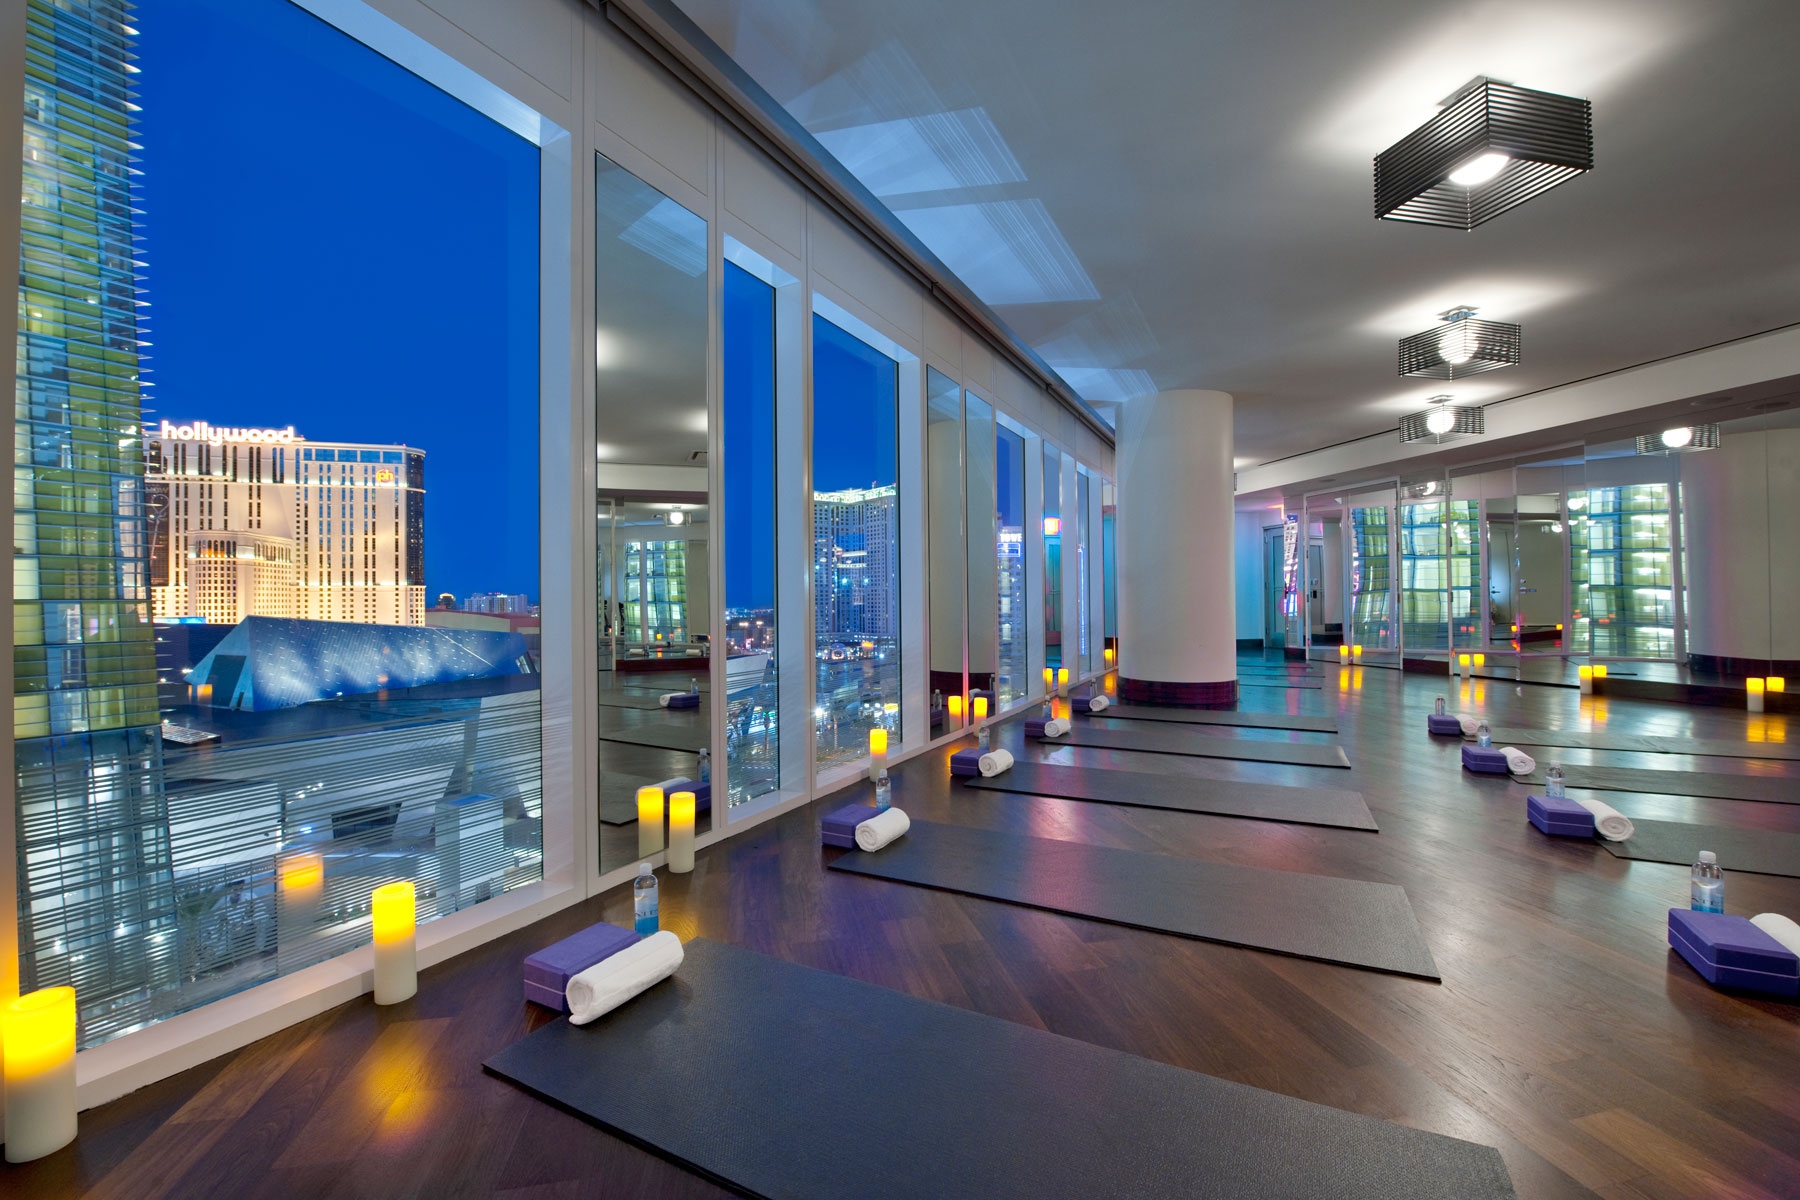 Mandarin oriental spa in las vegas offers sunshine yoga